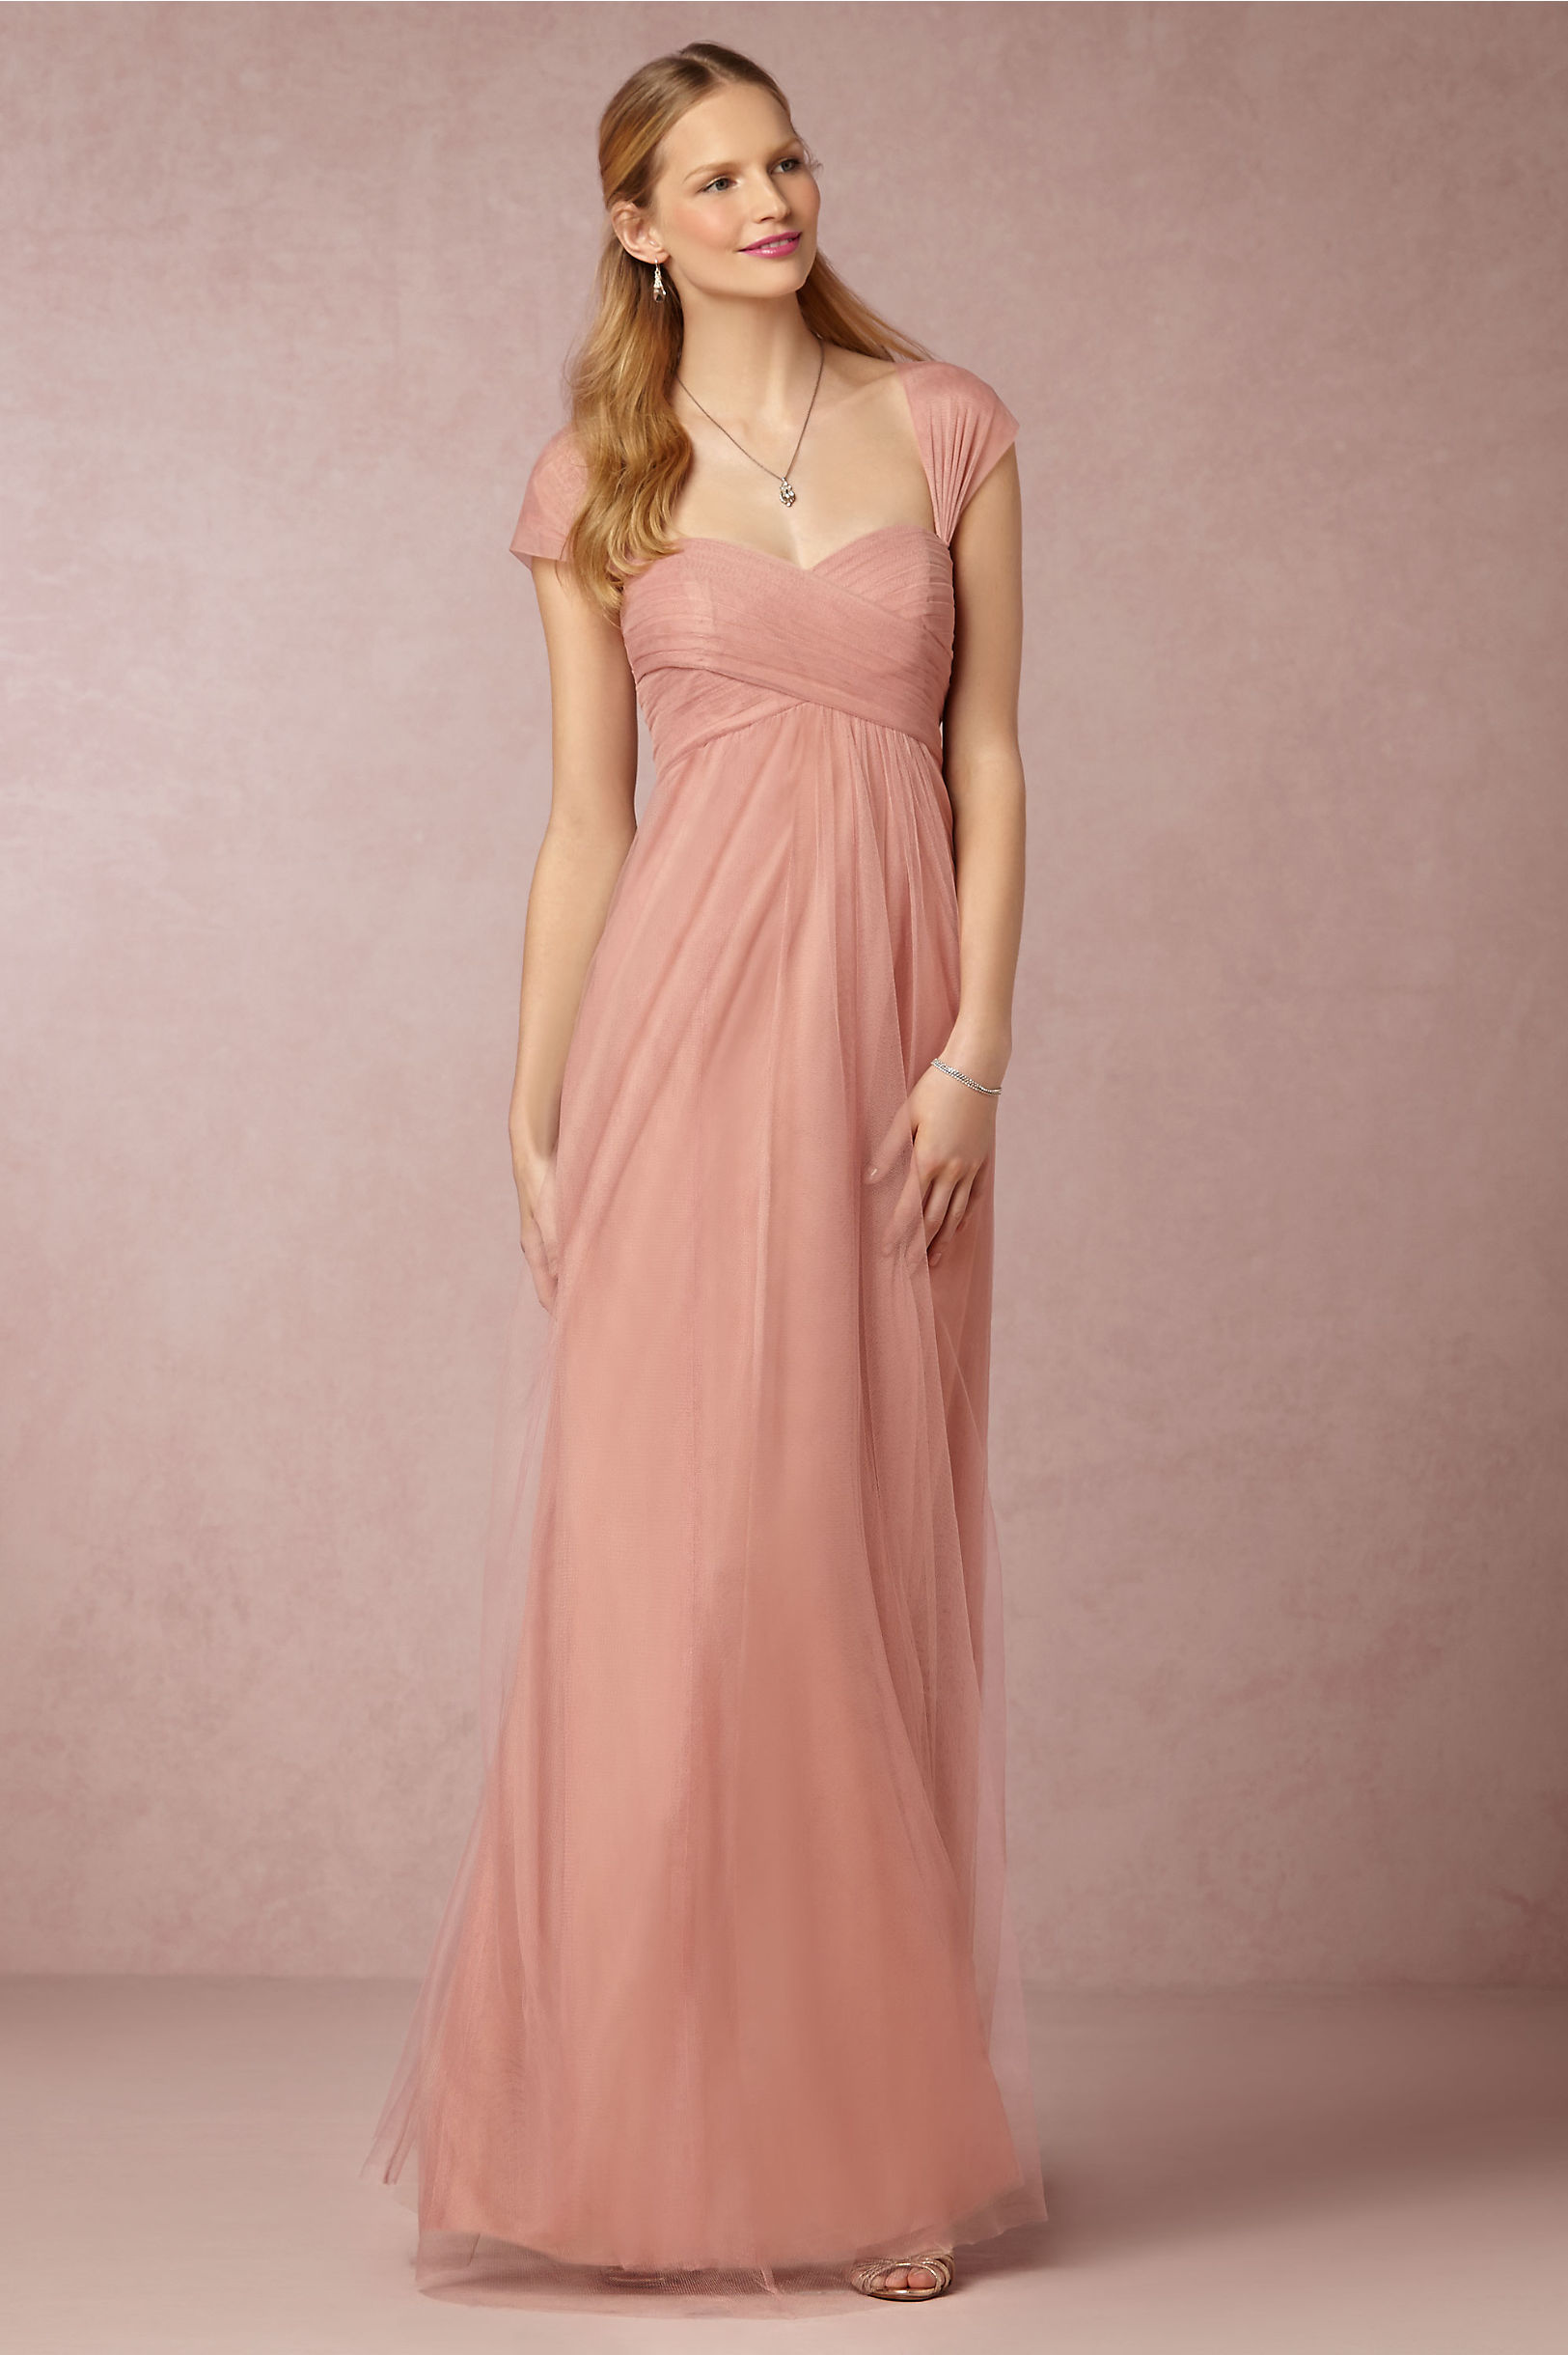 Willow Dress in Sale | BHLDN